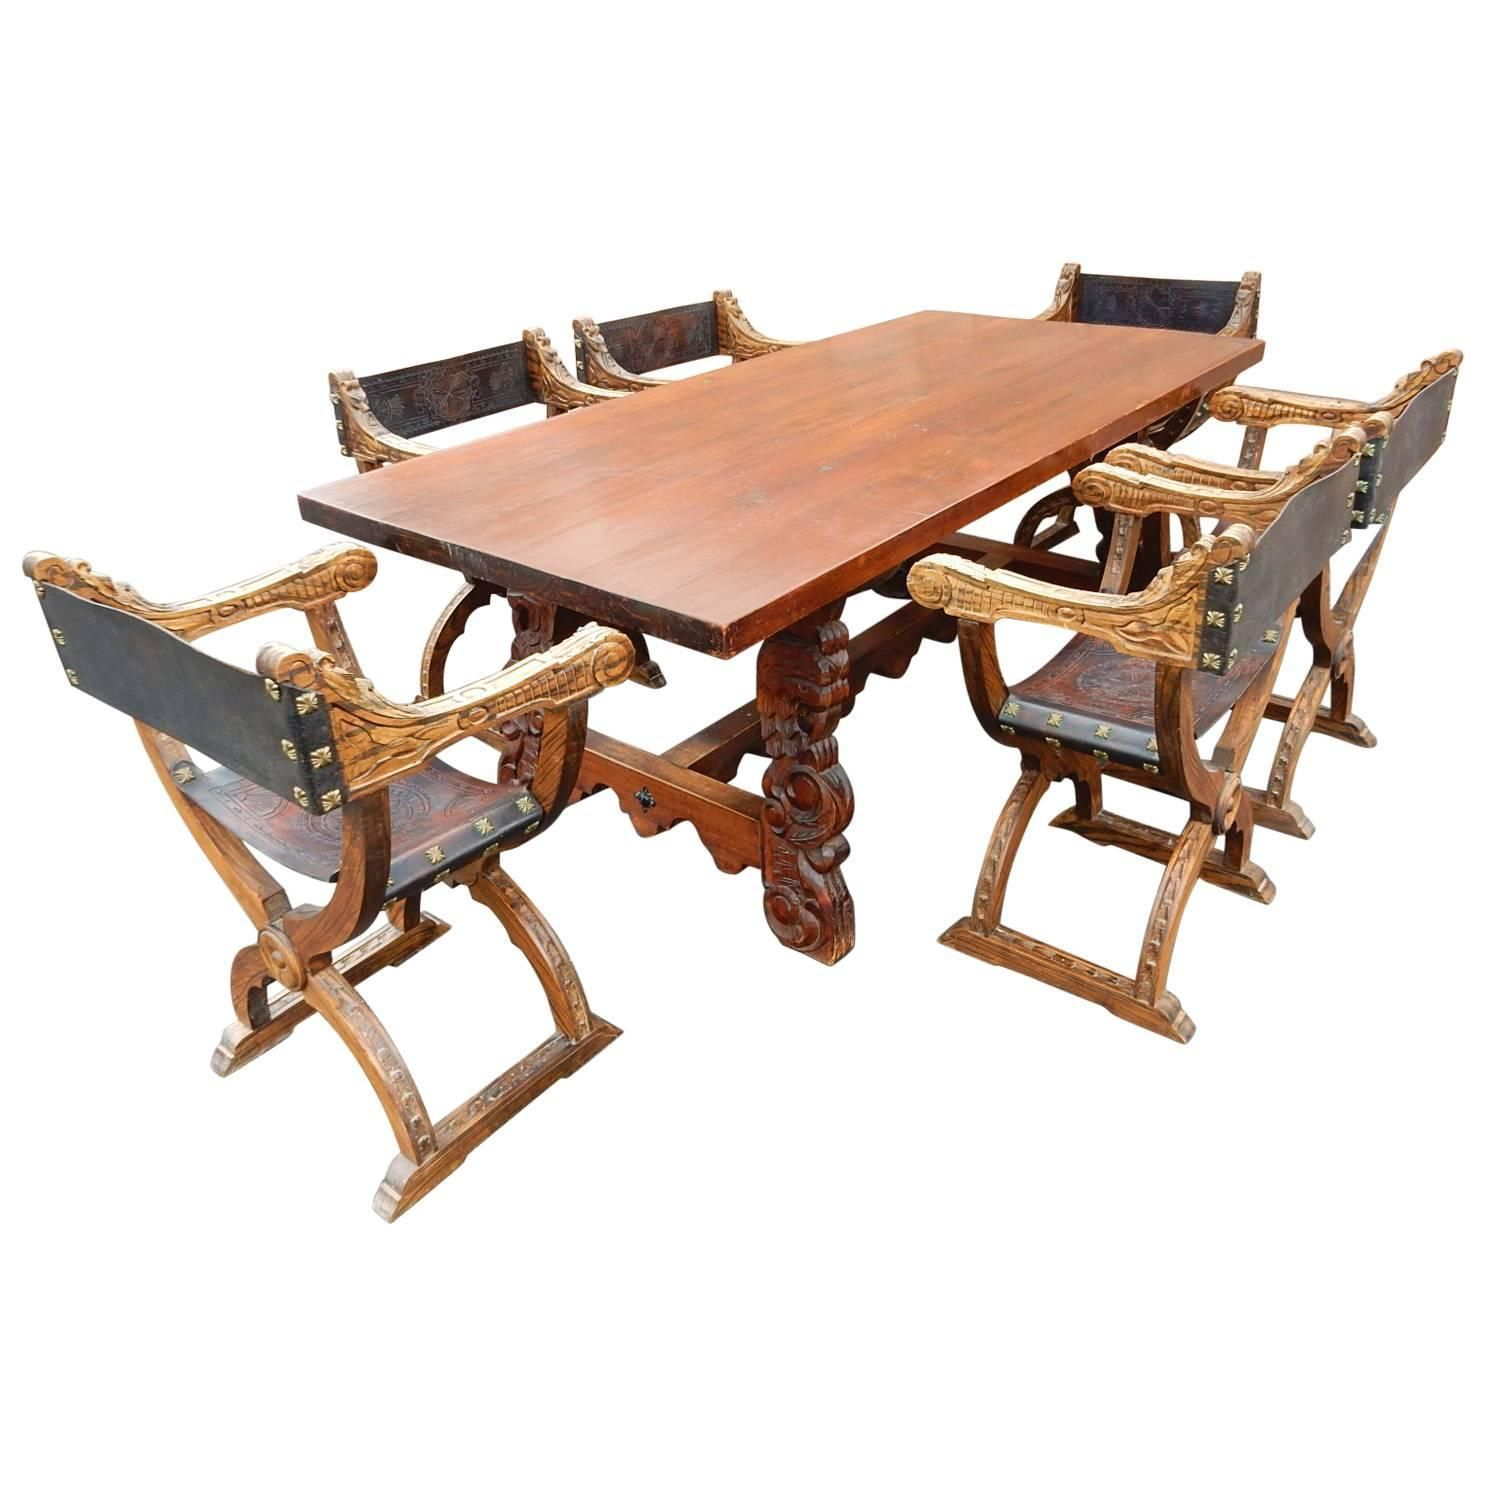 Spanish Colonial Dining Table With Six Elaborate Carved Wood And Leather Chairs Leather Chair Dining Table Dining